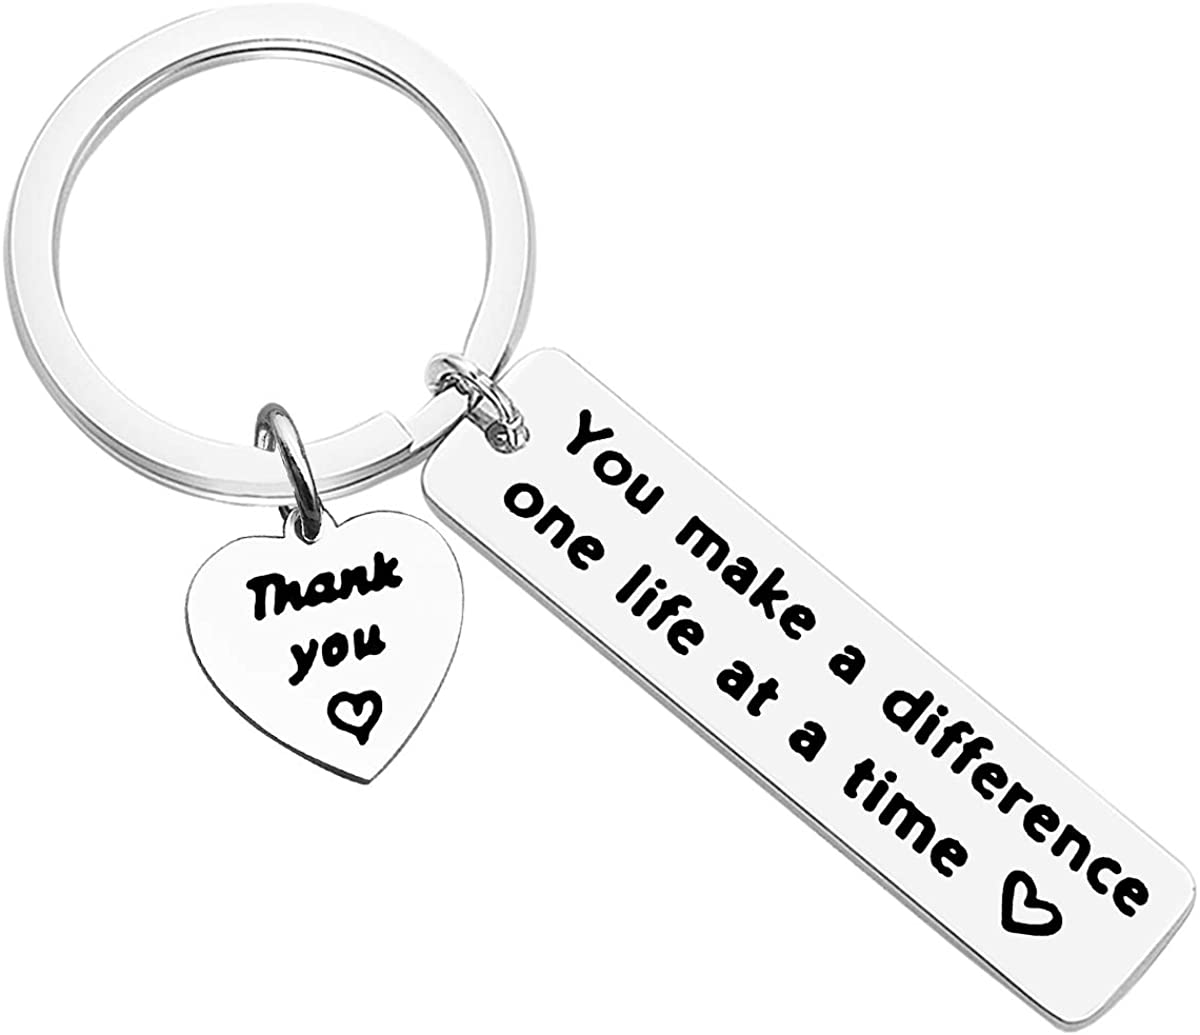 Thank You Gift Appreciation Jewelry, Make A Difference Keychain Stainless Steel Keyring Gift,Employee Gift Social Worker Jewelry, Colleague Boss Goodbye Farewell Gifts Going Away, Christmas Keyring